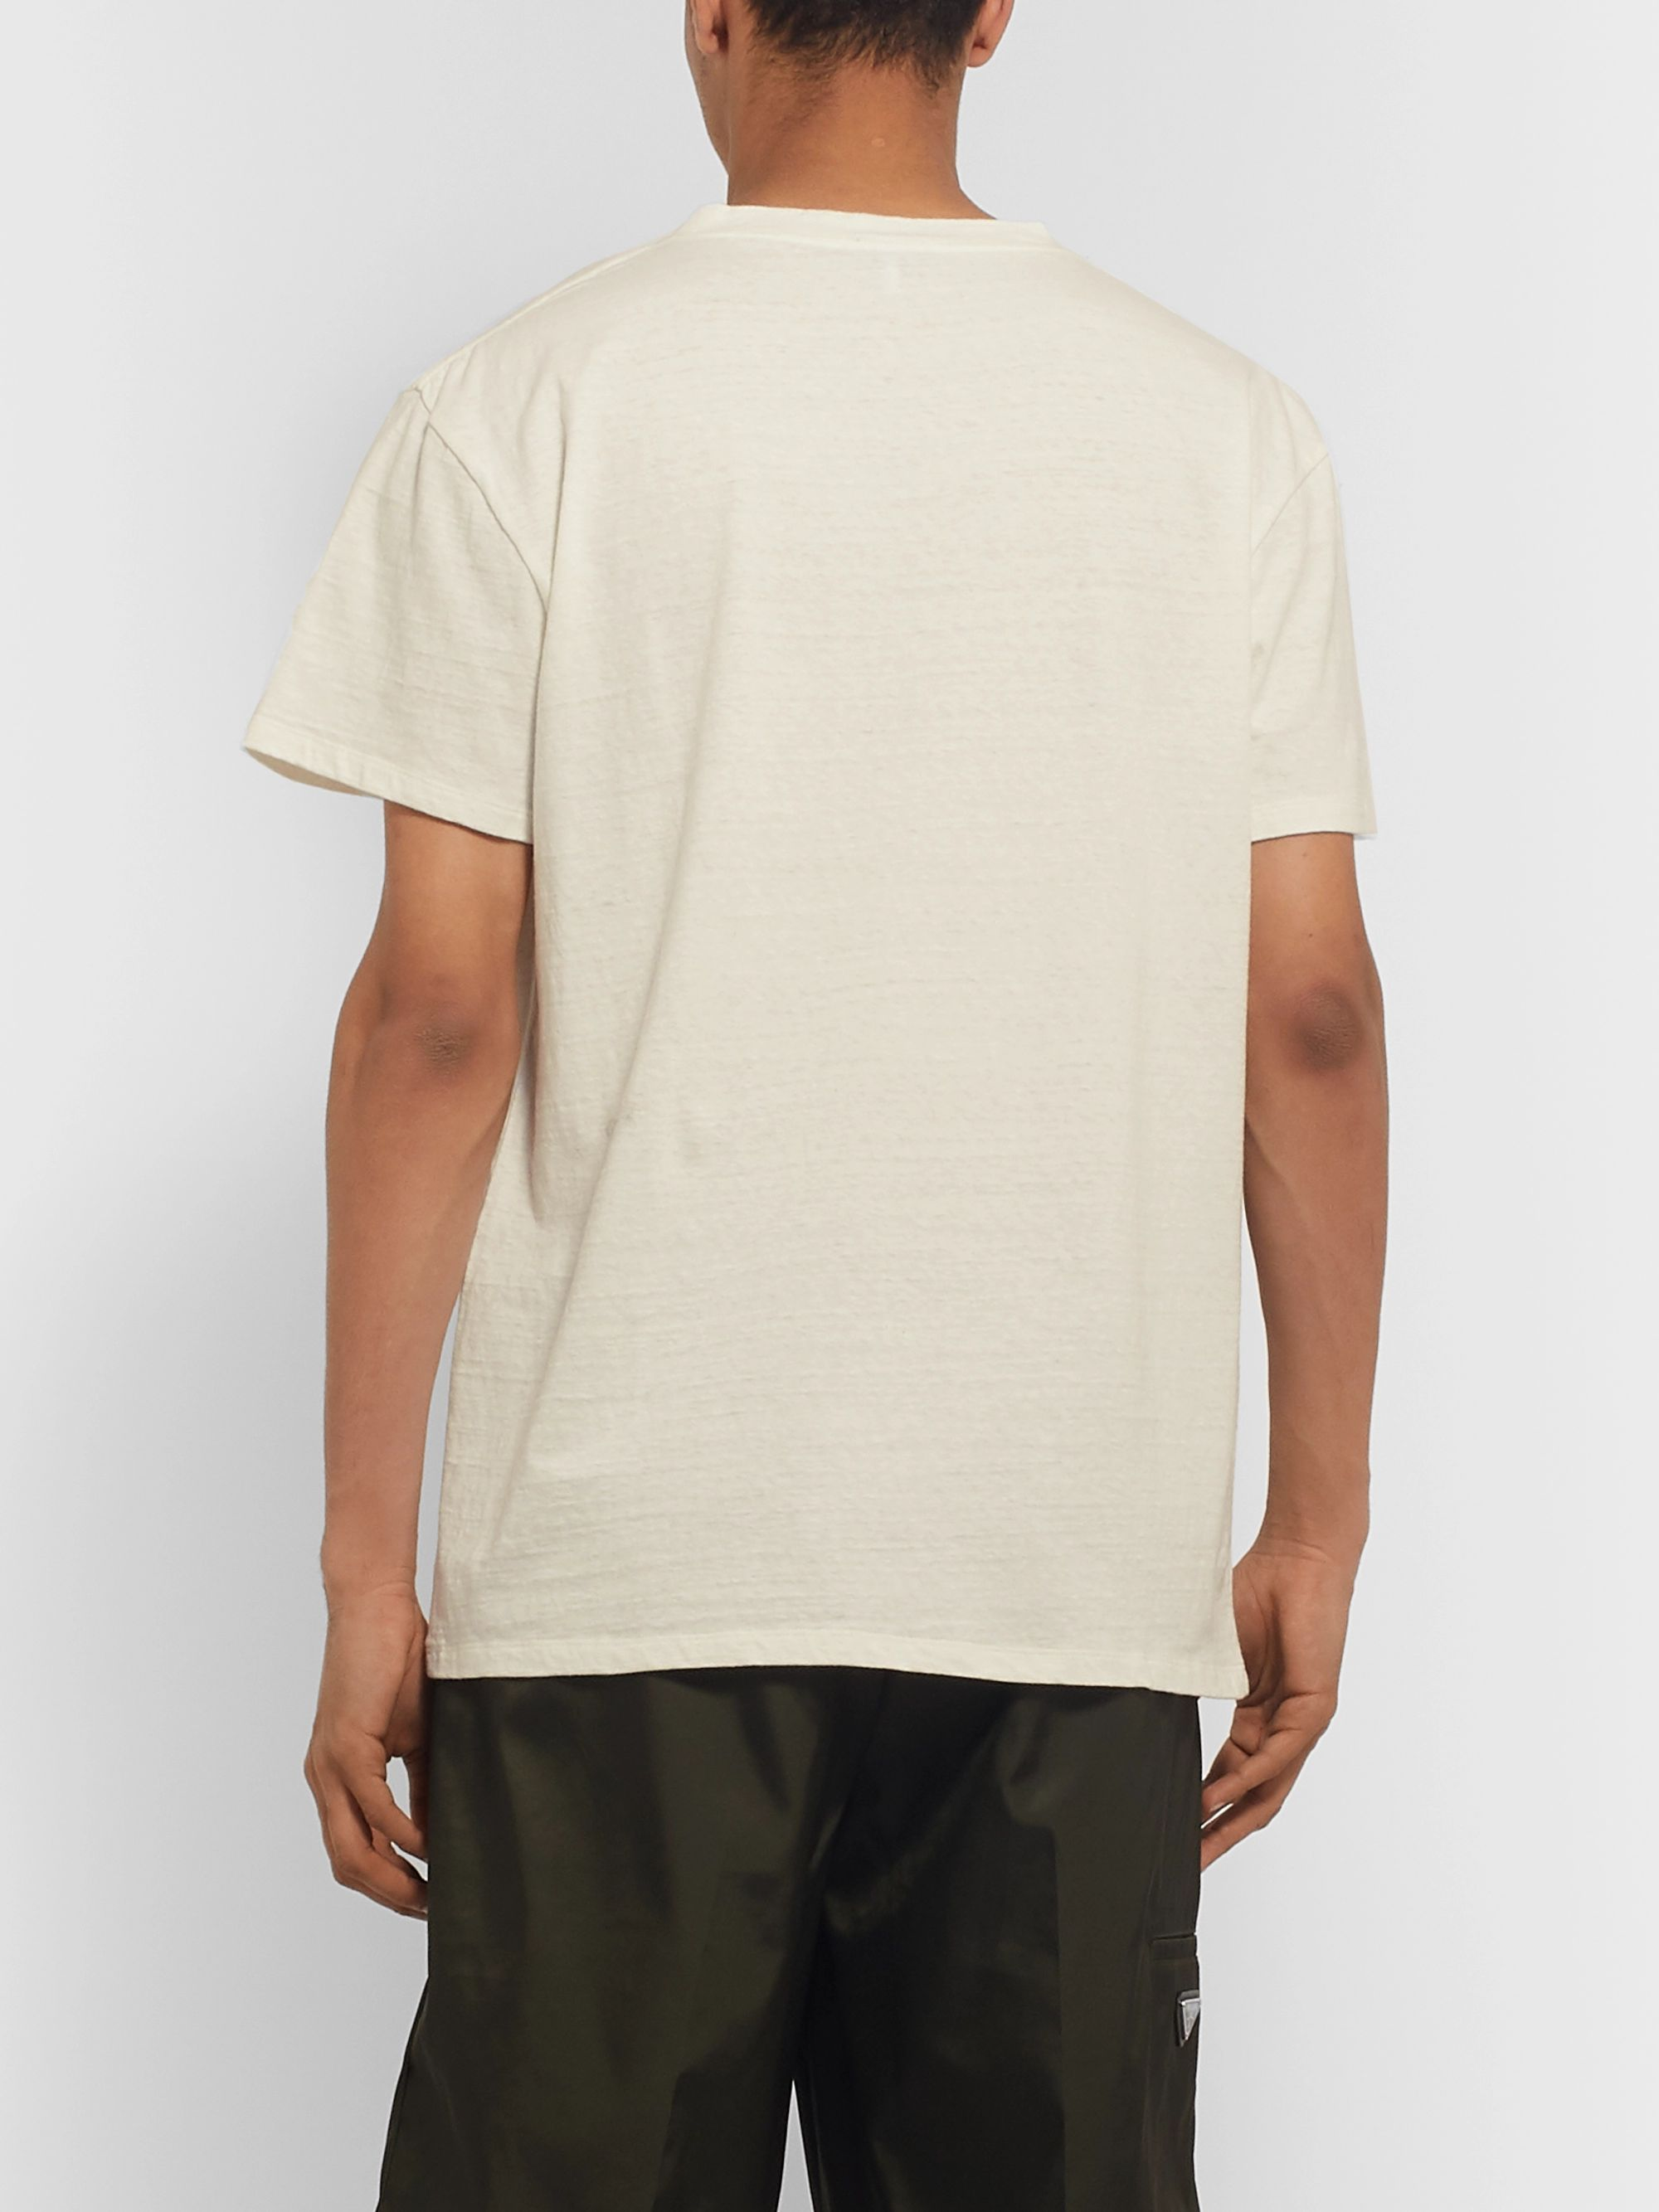 Loewe Eye/LOEWE/Nature Printed Slub Cotton-Jersey T-Shirt